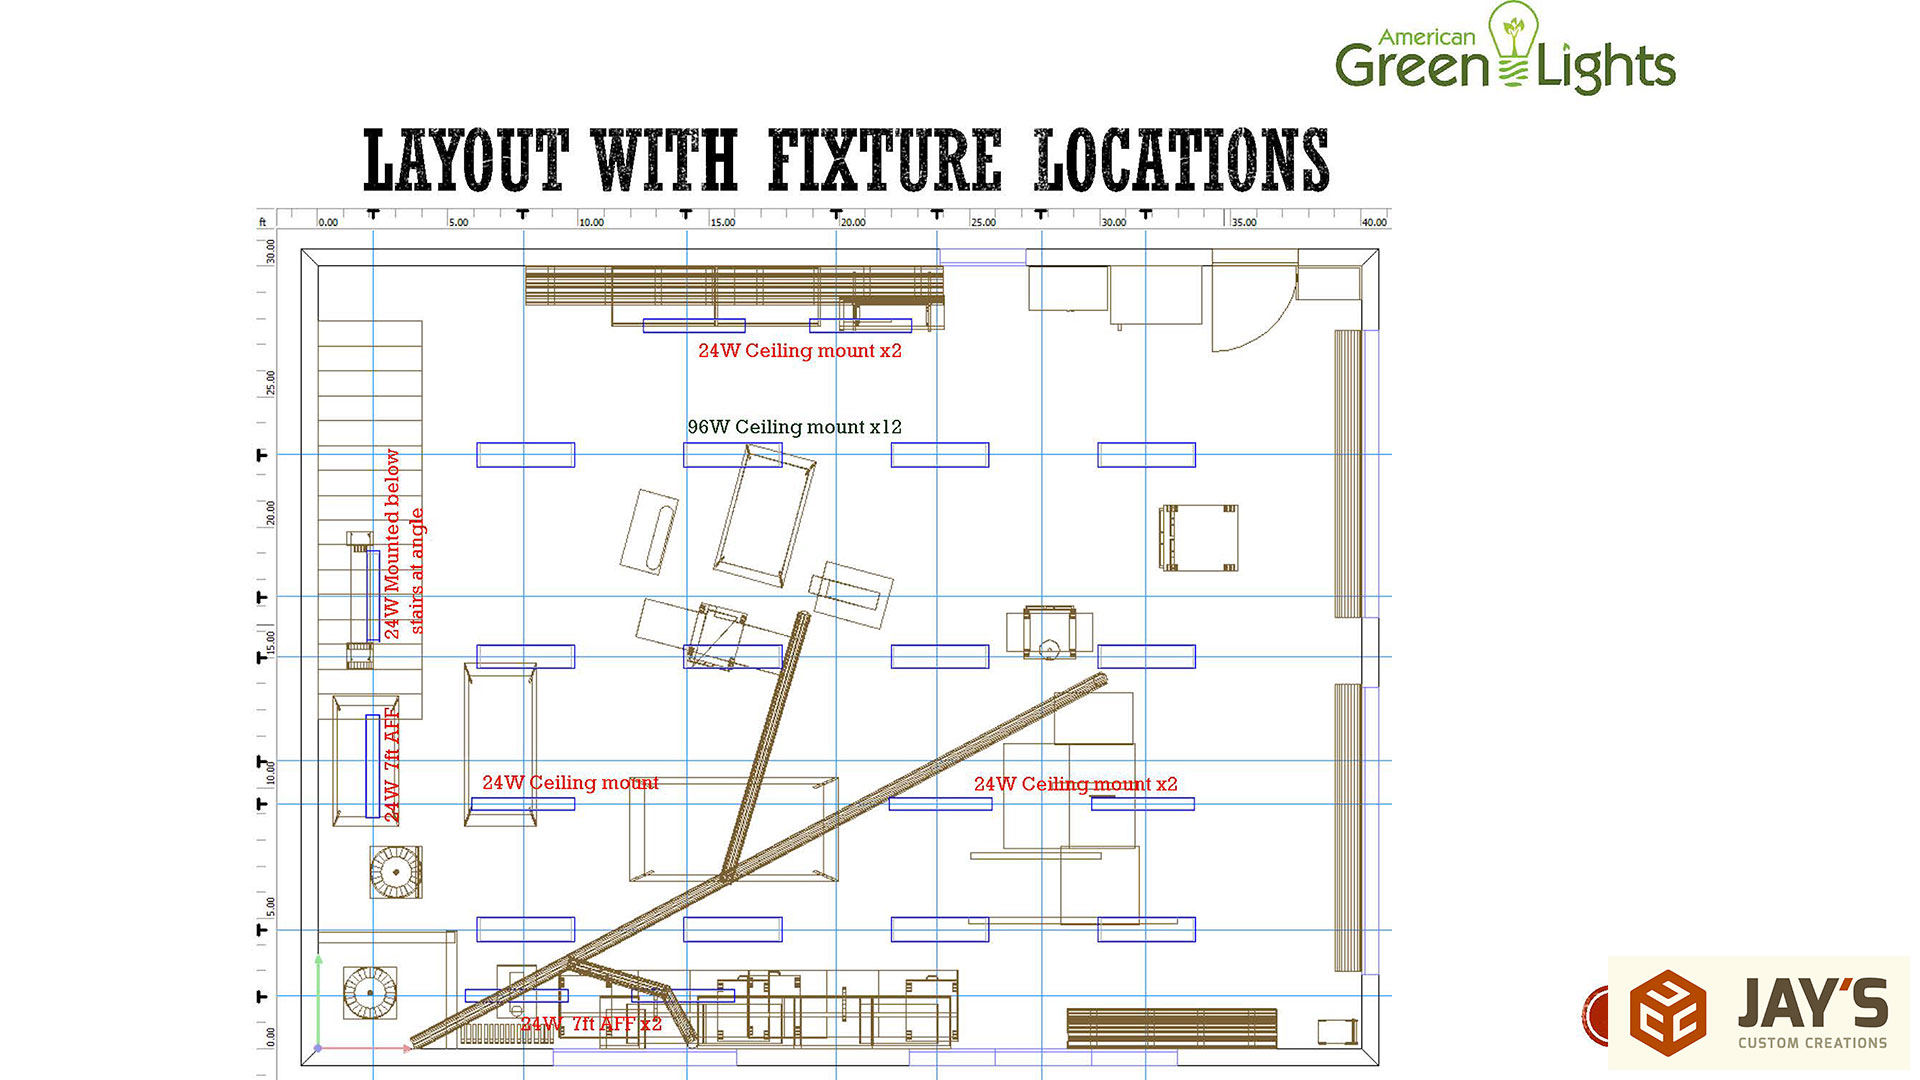 fluorescent wiring diagrams row 30  40 shop part 5 electrical  lighting  and security jays  30  40 shop part 5 electrical  lighting